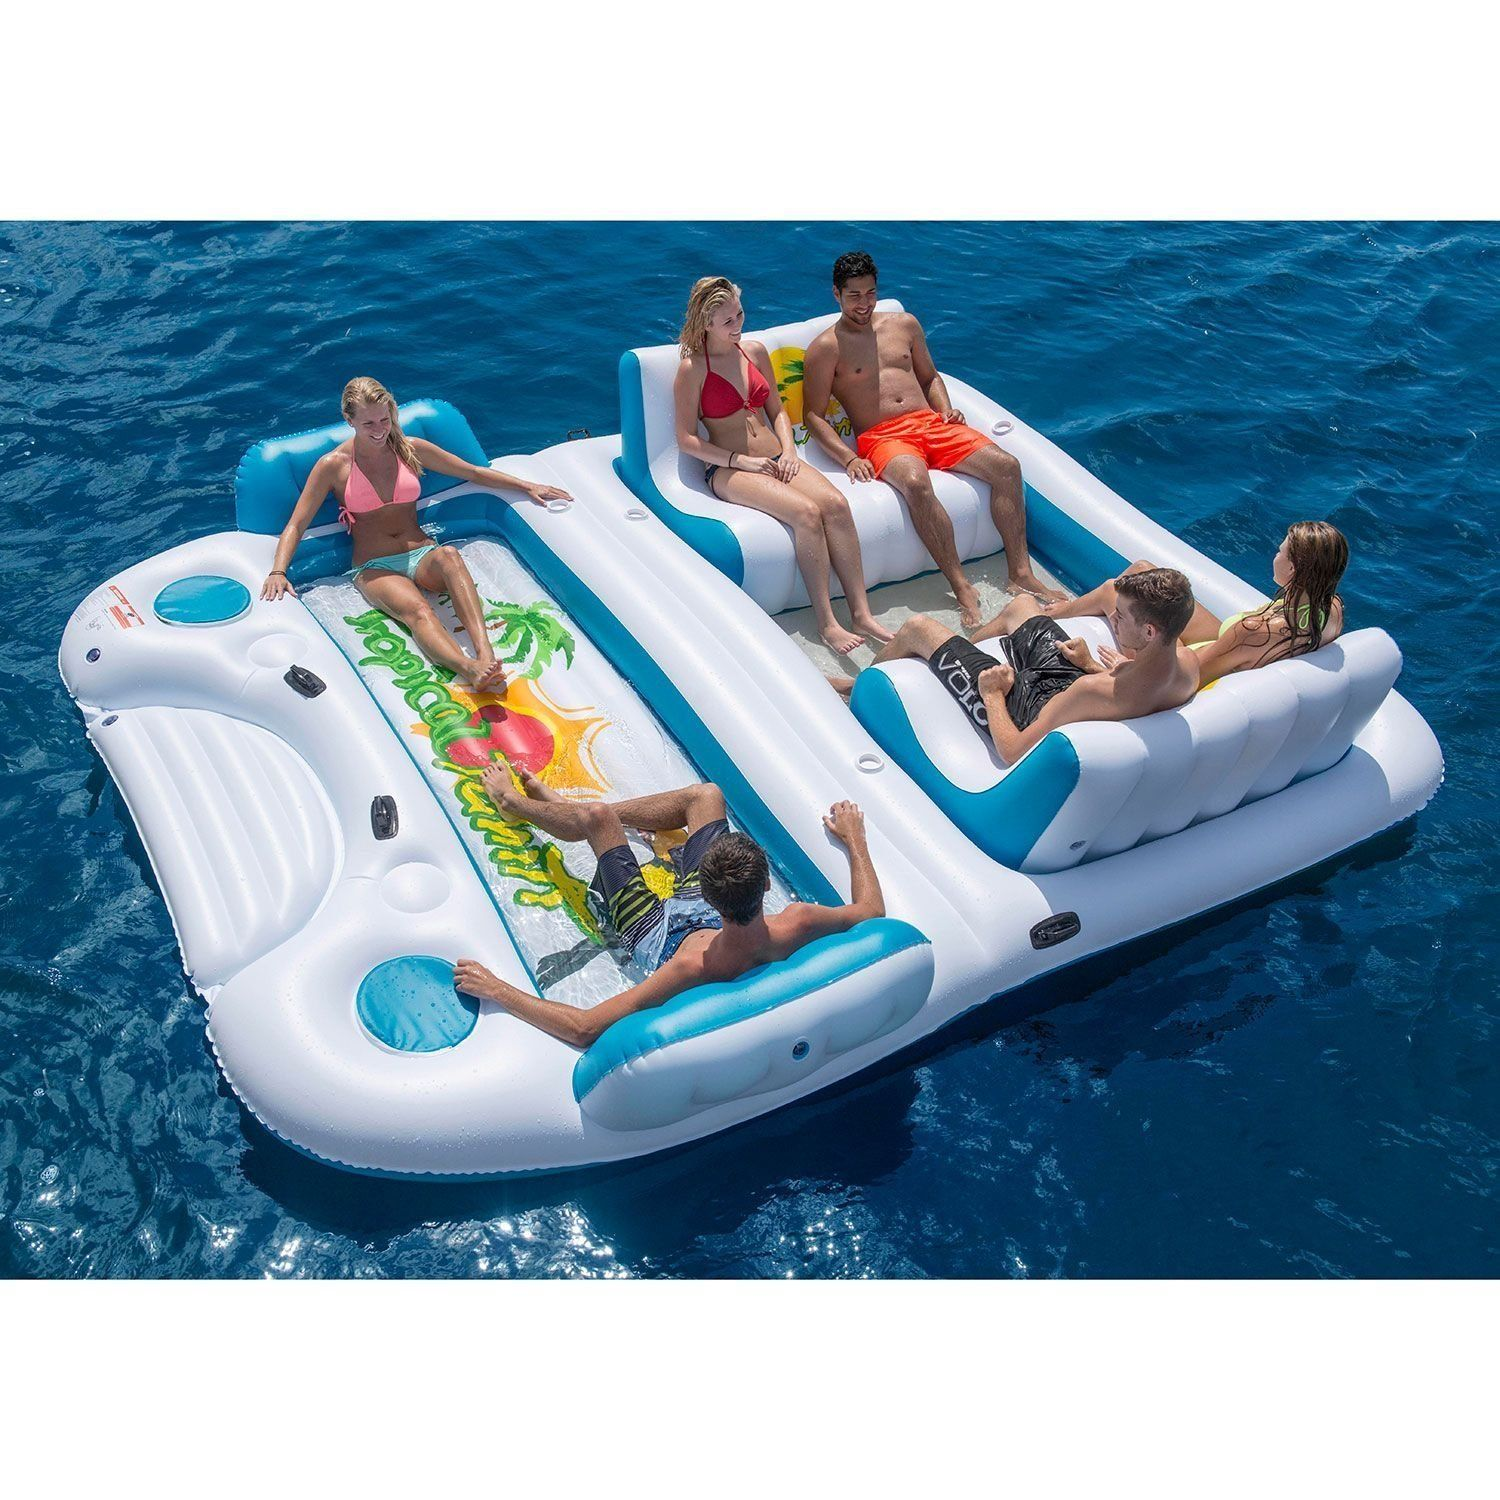 Tropical Tahiti Floating Island for the pool beach or lake